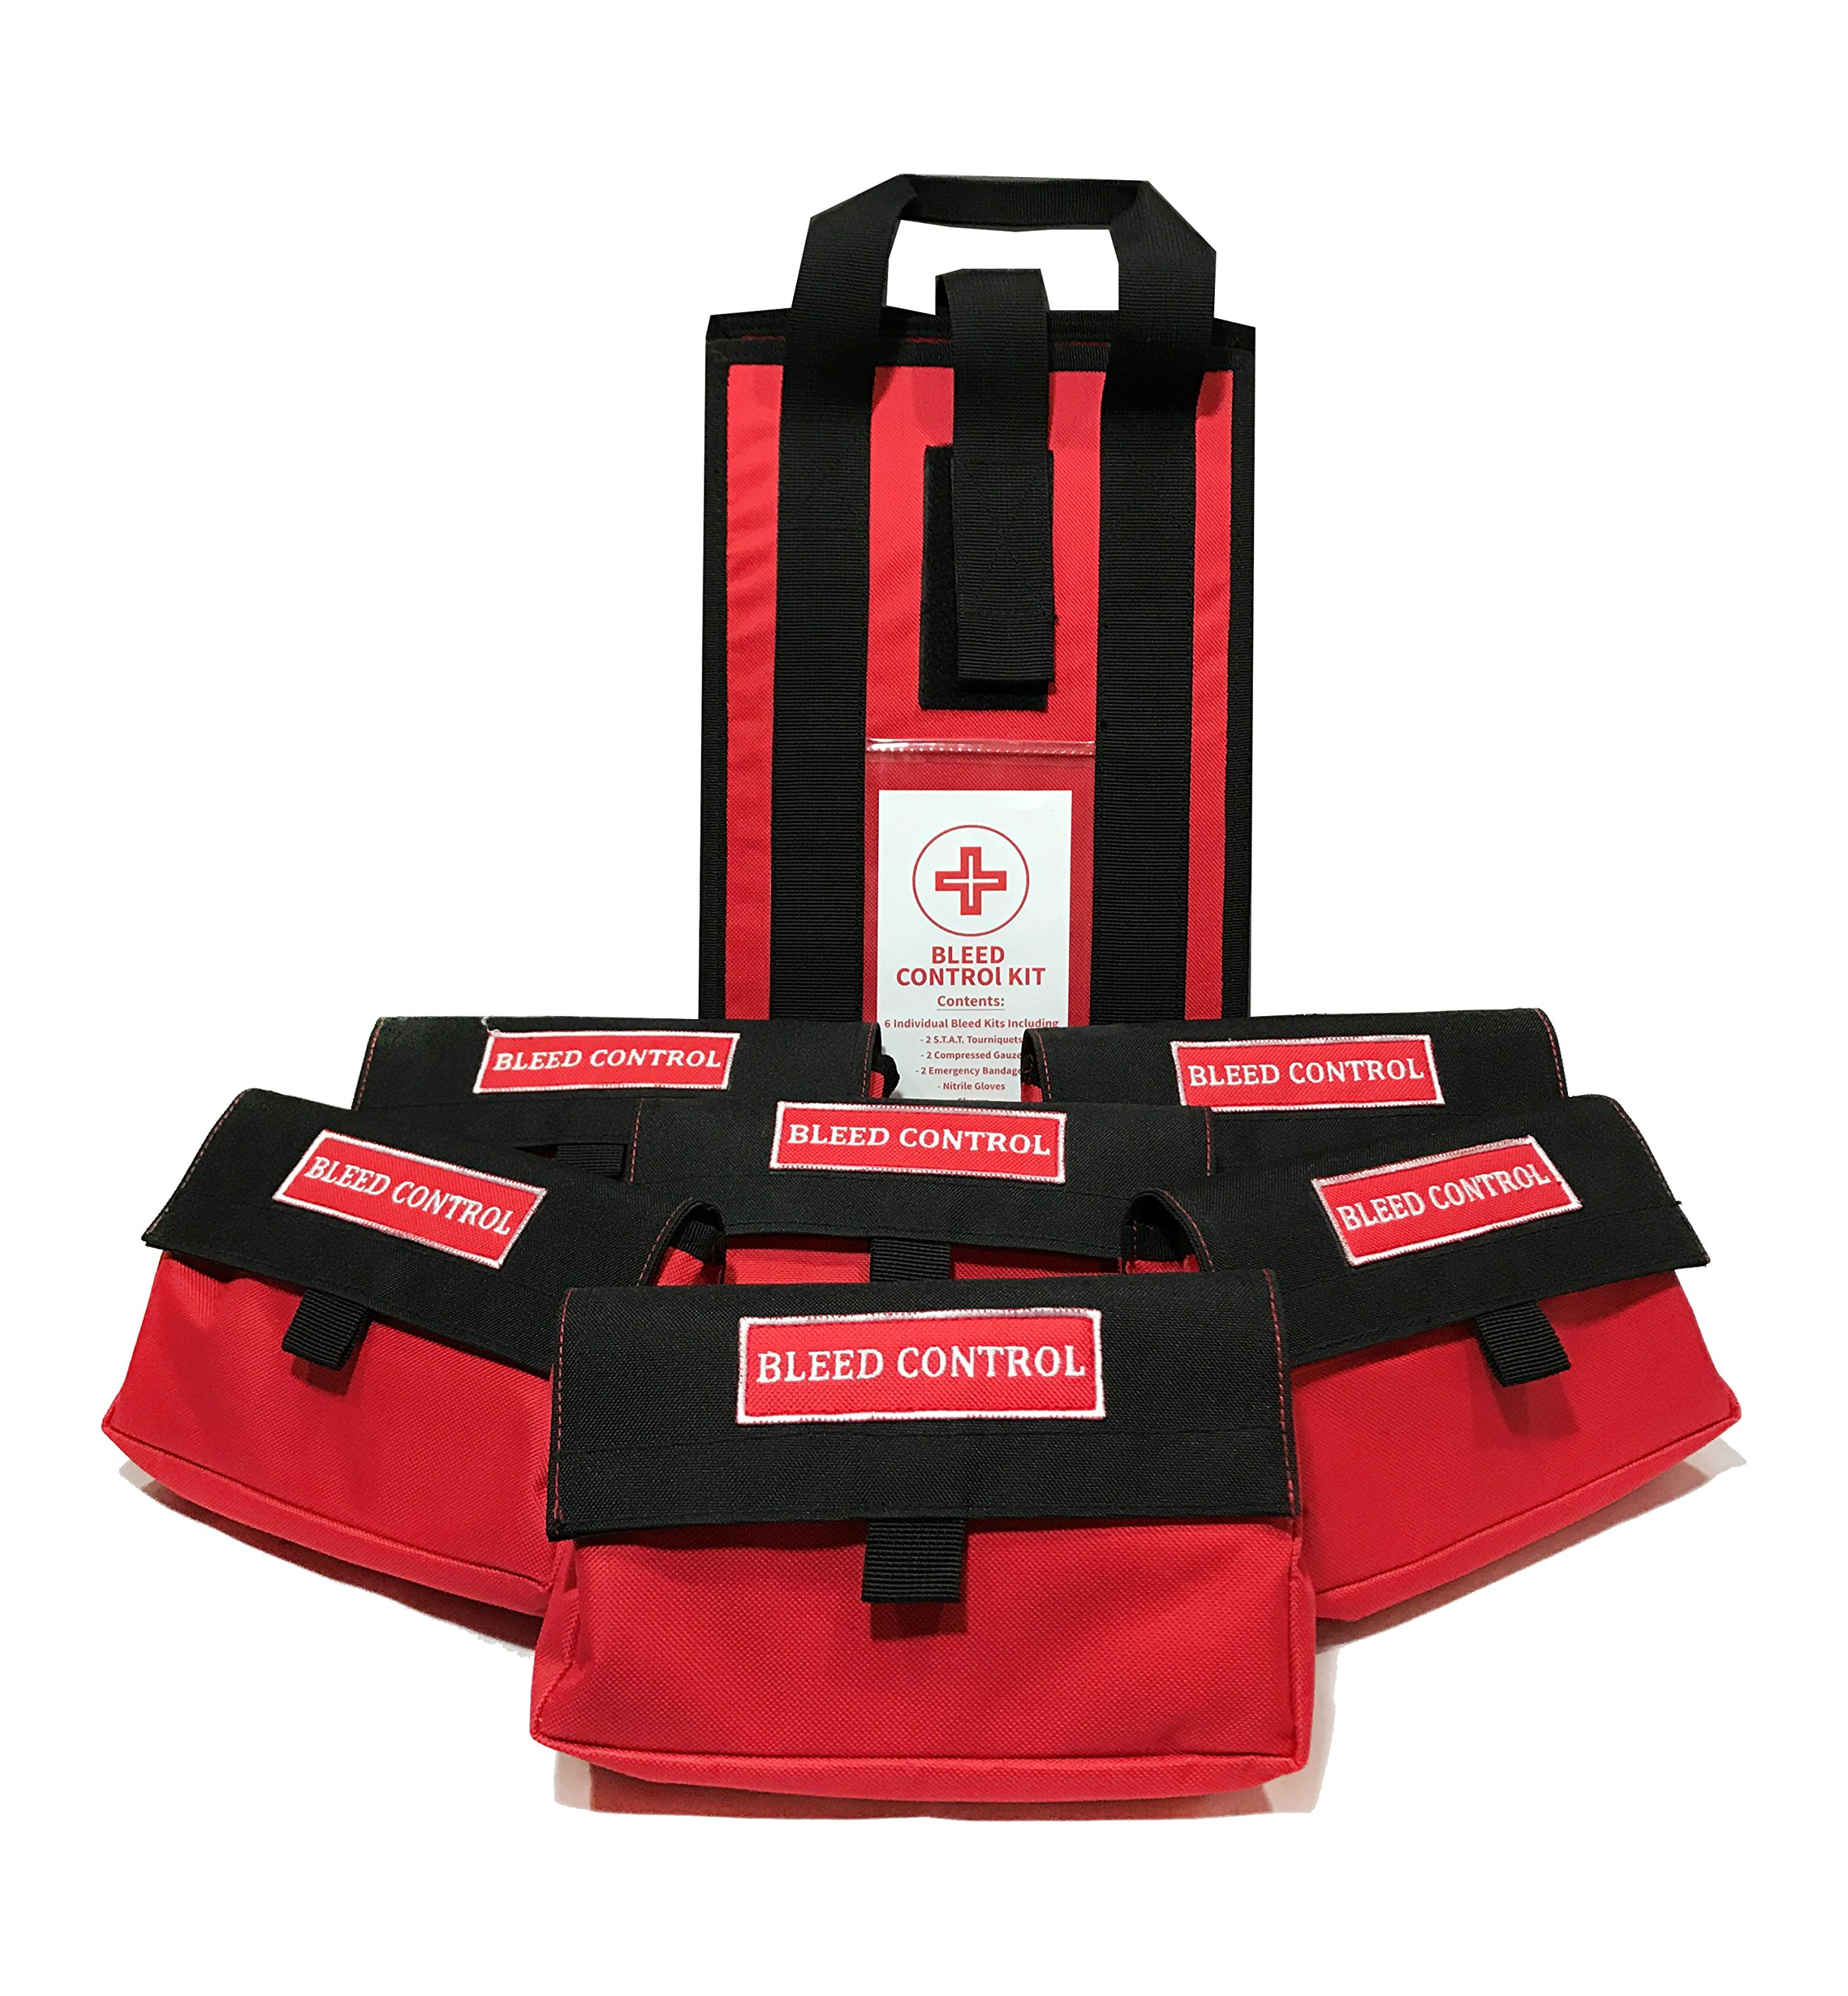 Public Bleed Control Kit by STAT Medical Devices LLC (Image #2)